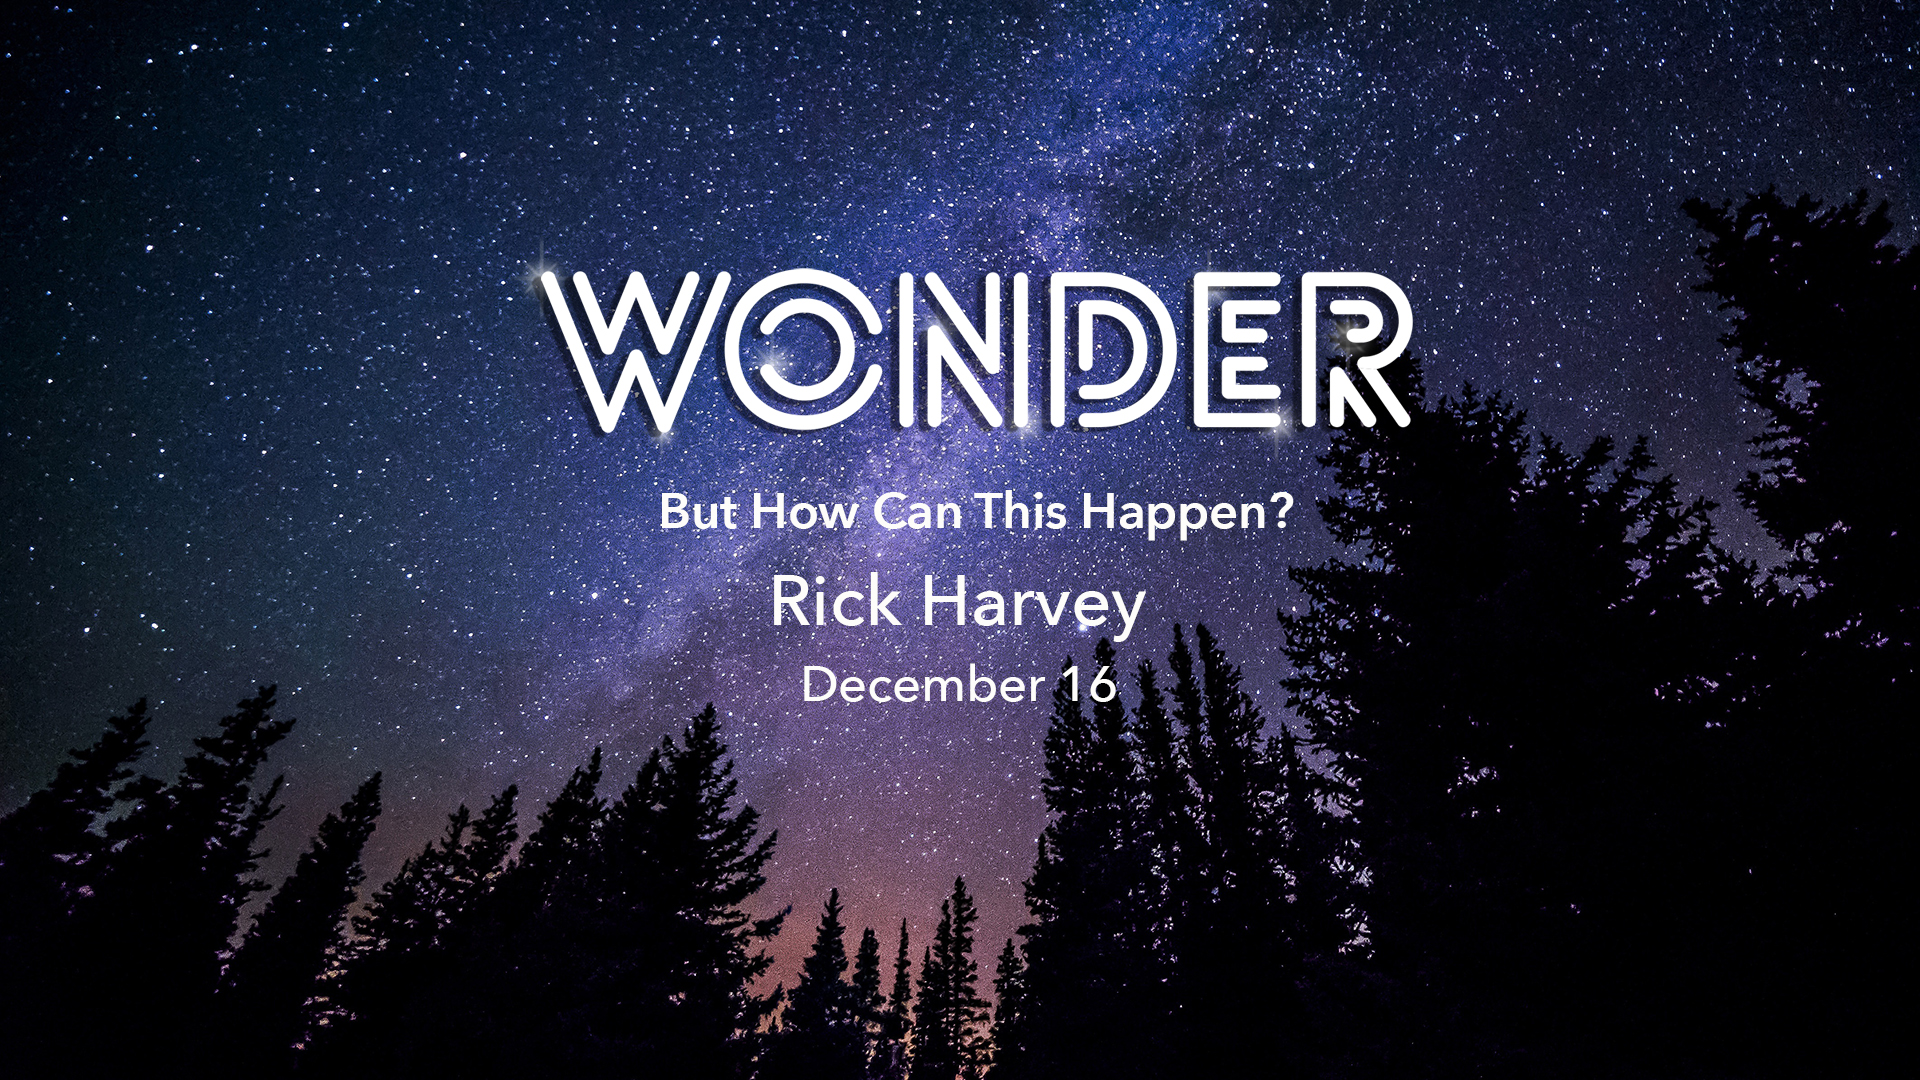 Wonder_vimeo_16th.jpg